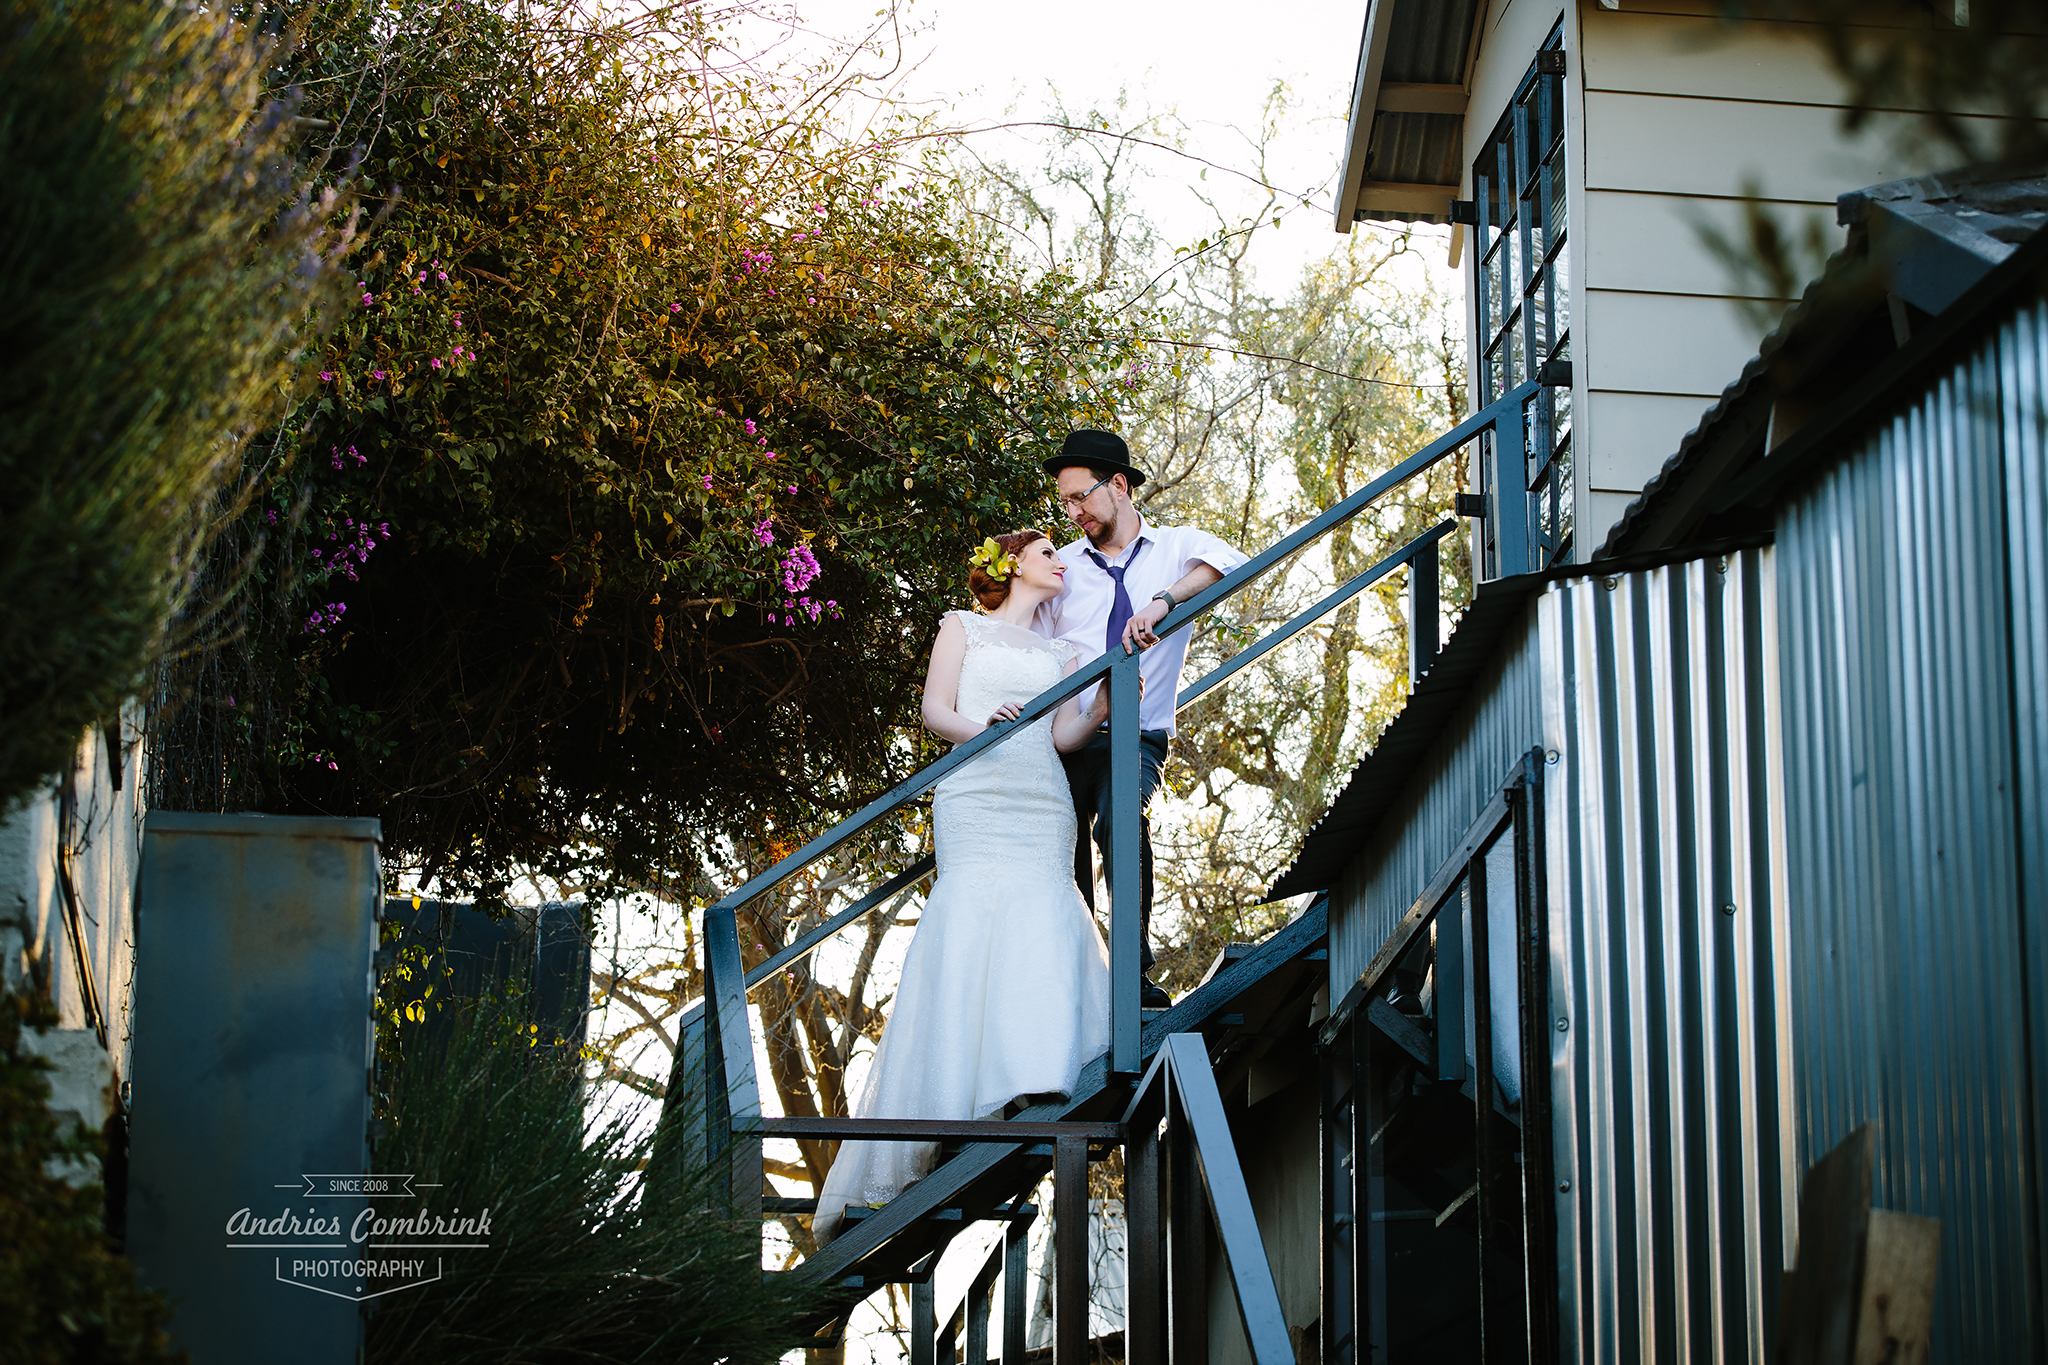 elopement bride+groom portrait 1